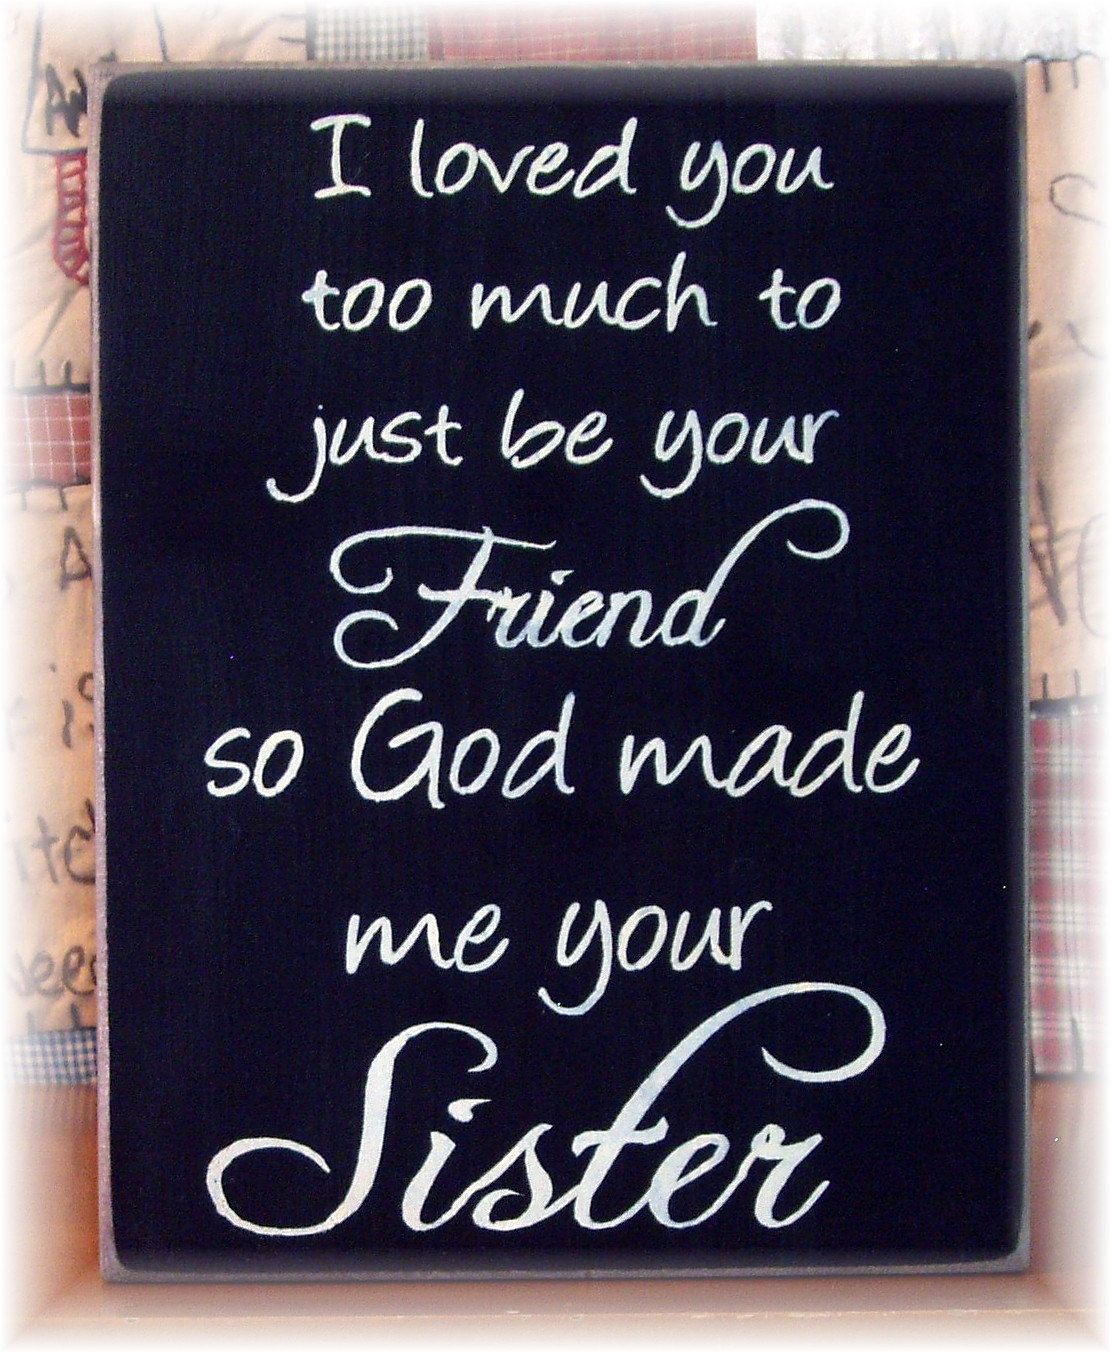 I loved you too much to just be your friend so God made me your sister